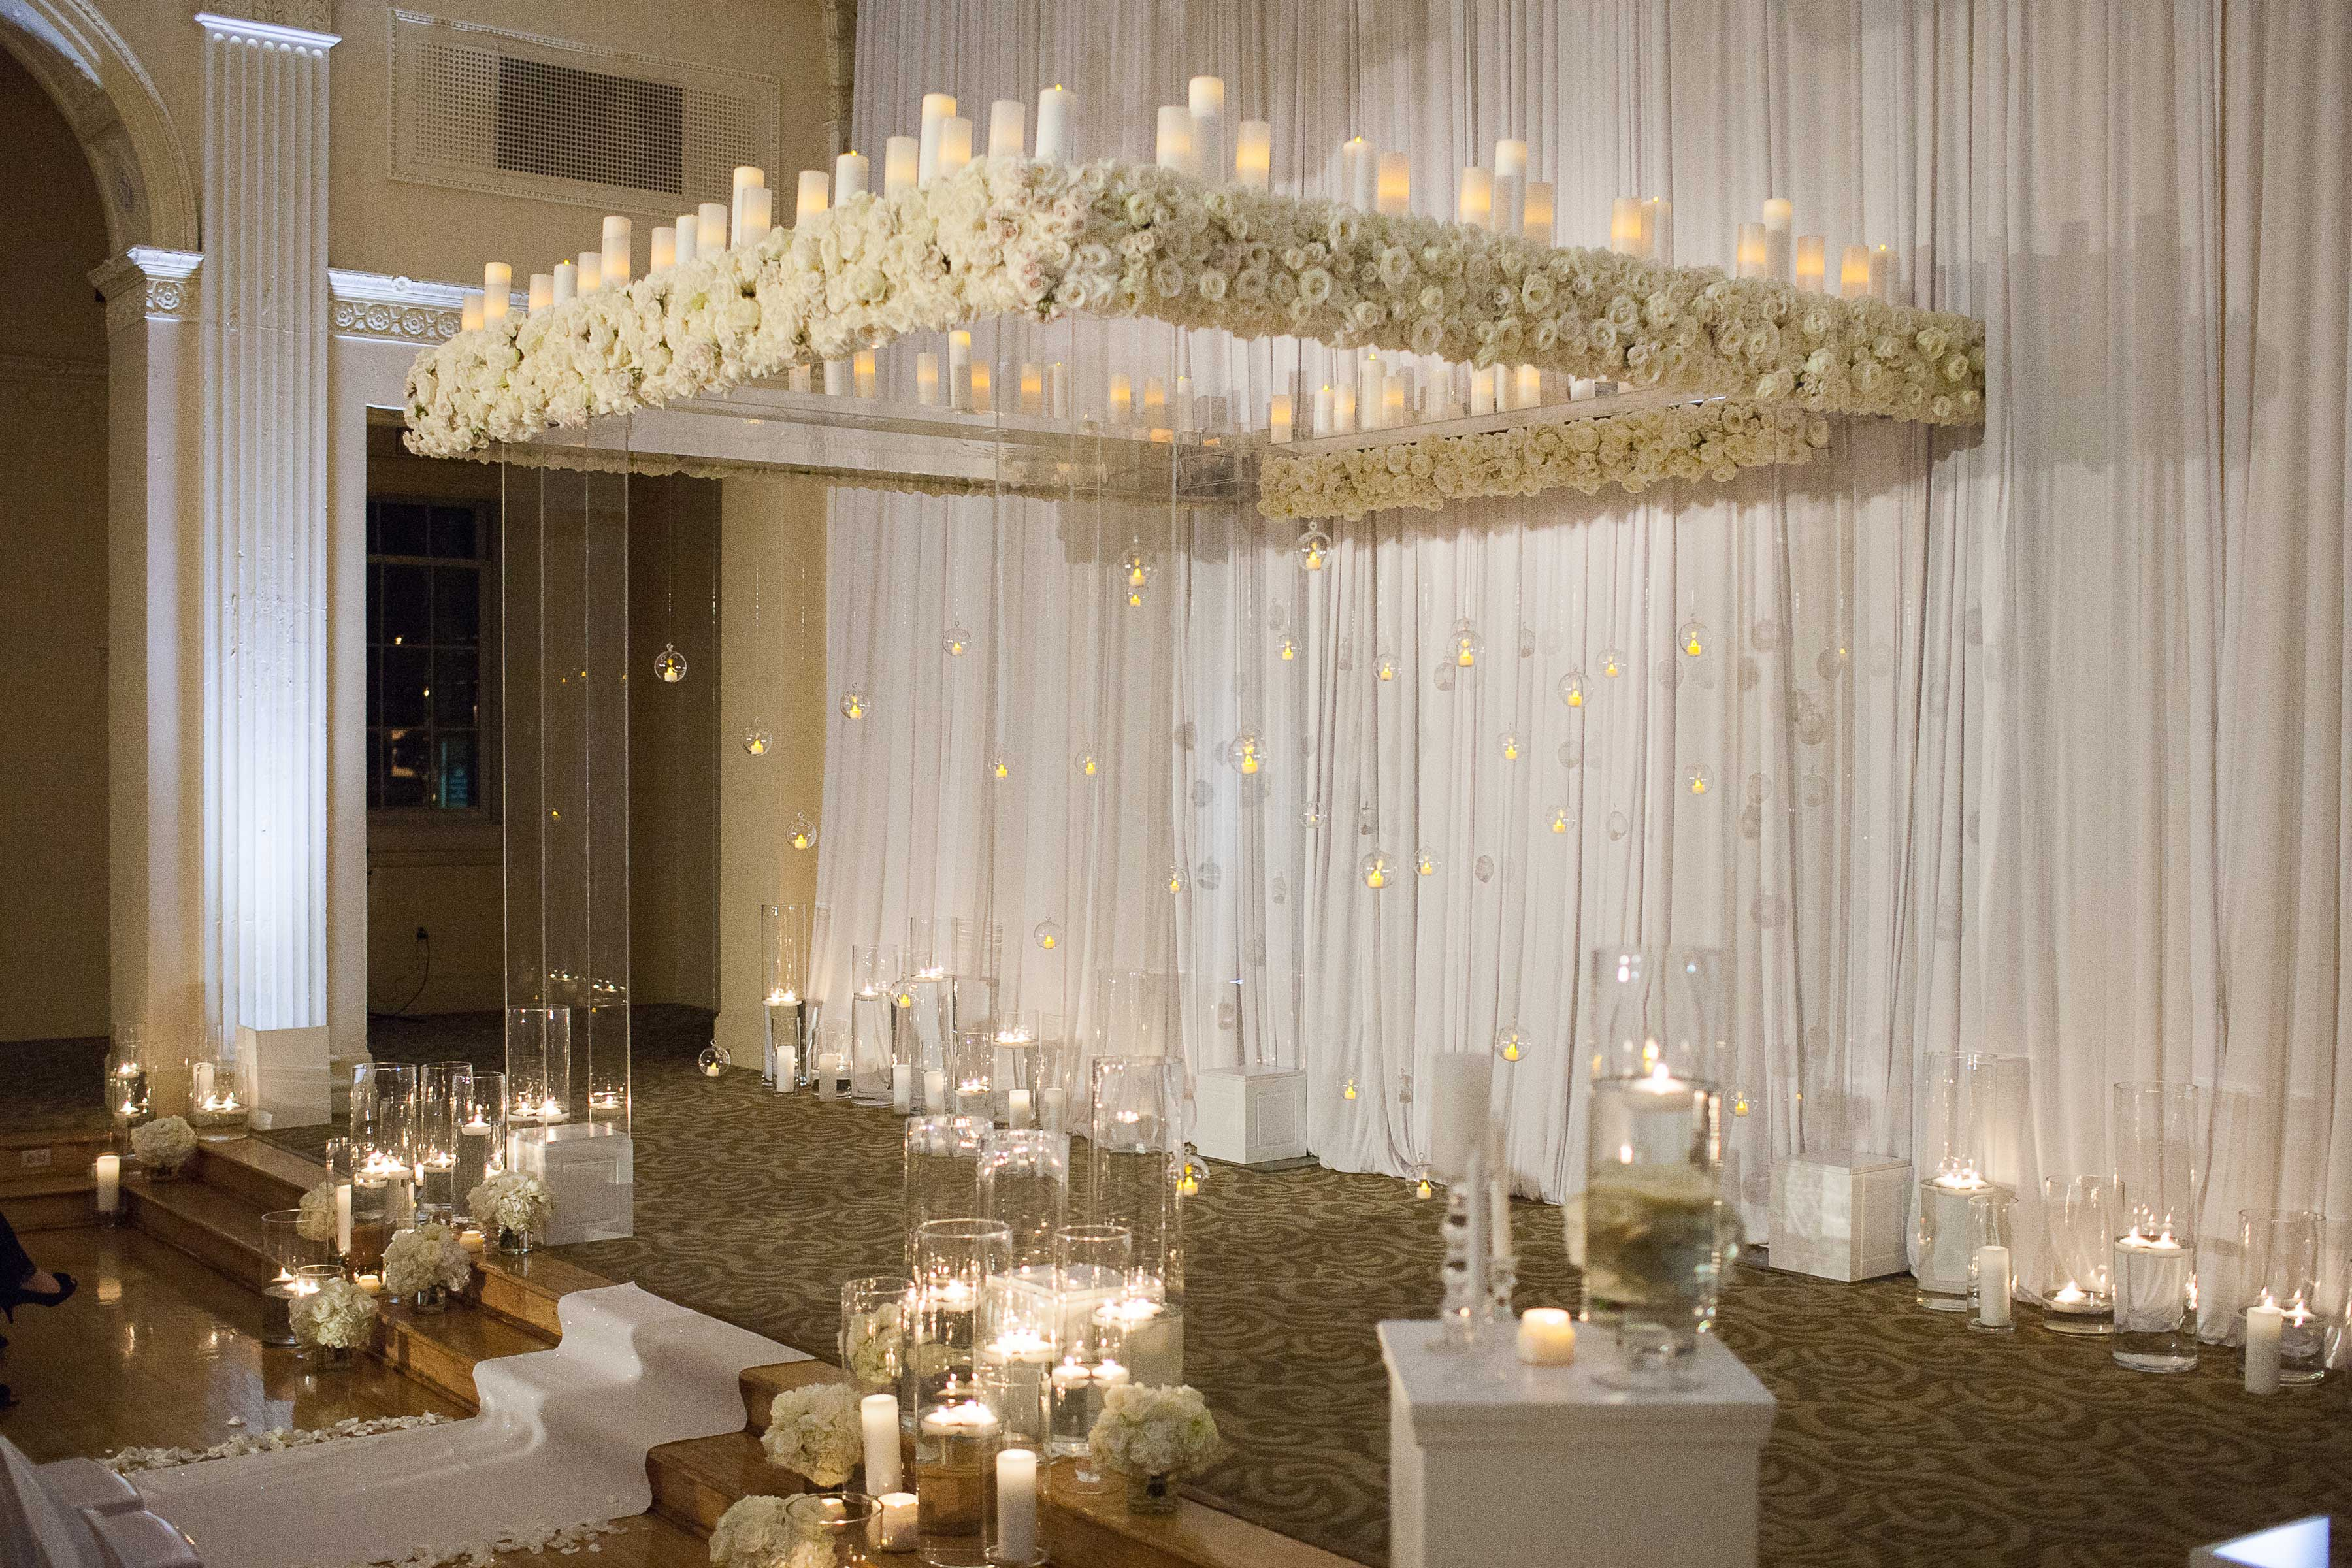 chuppah made of luctire with pillar candles on top